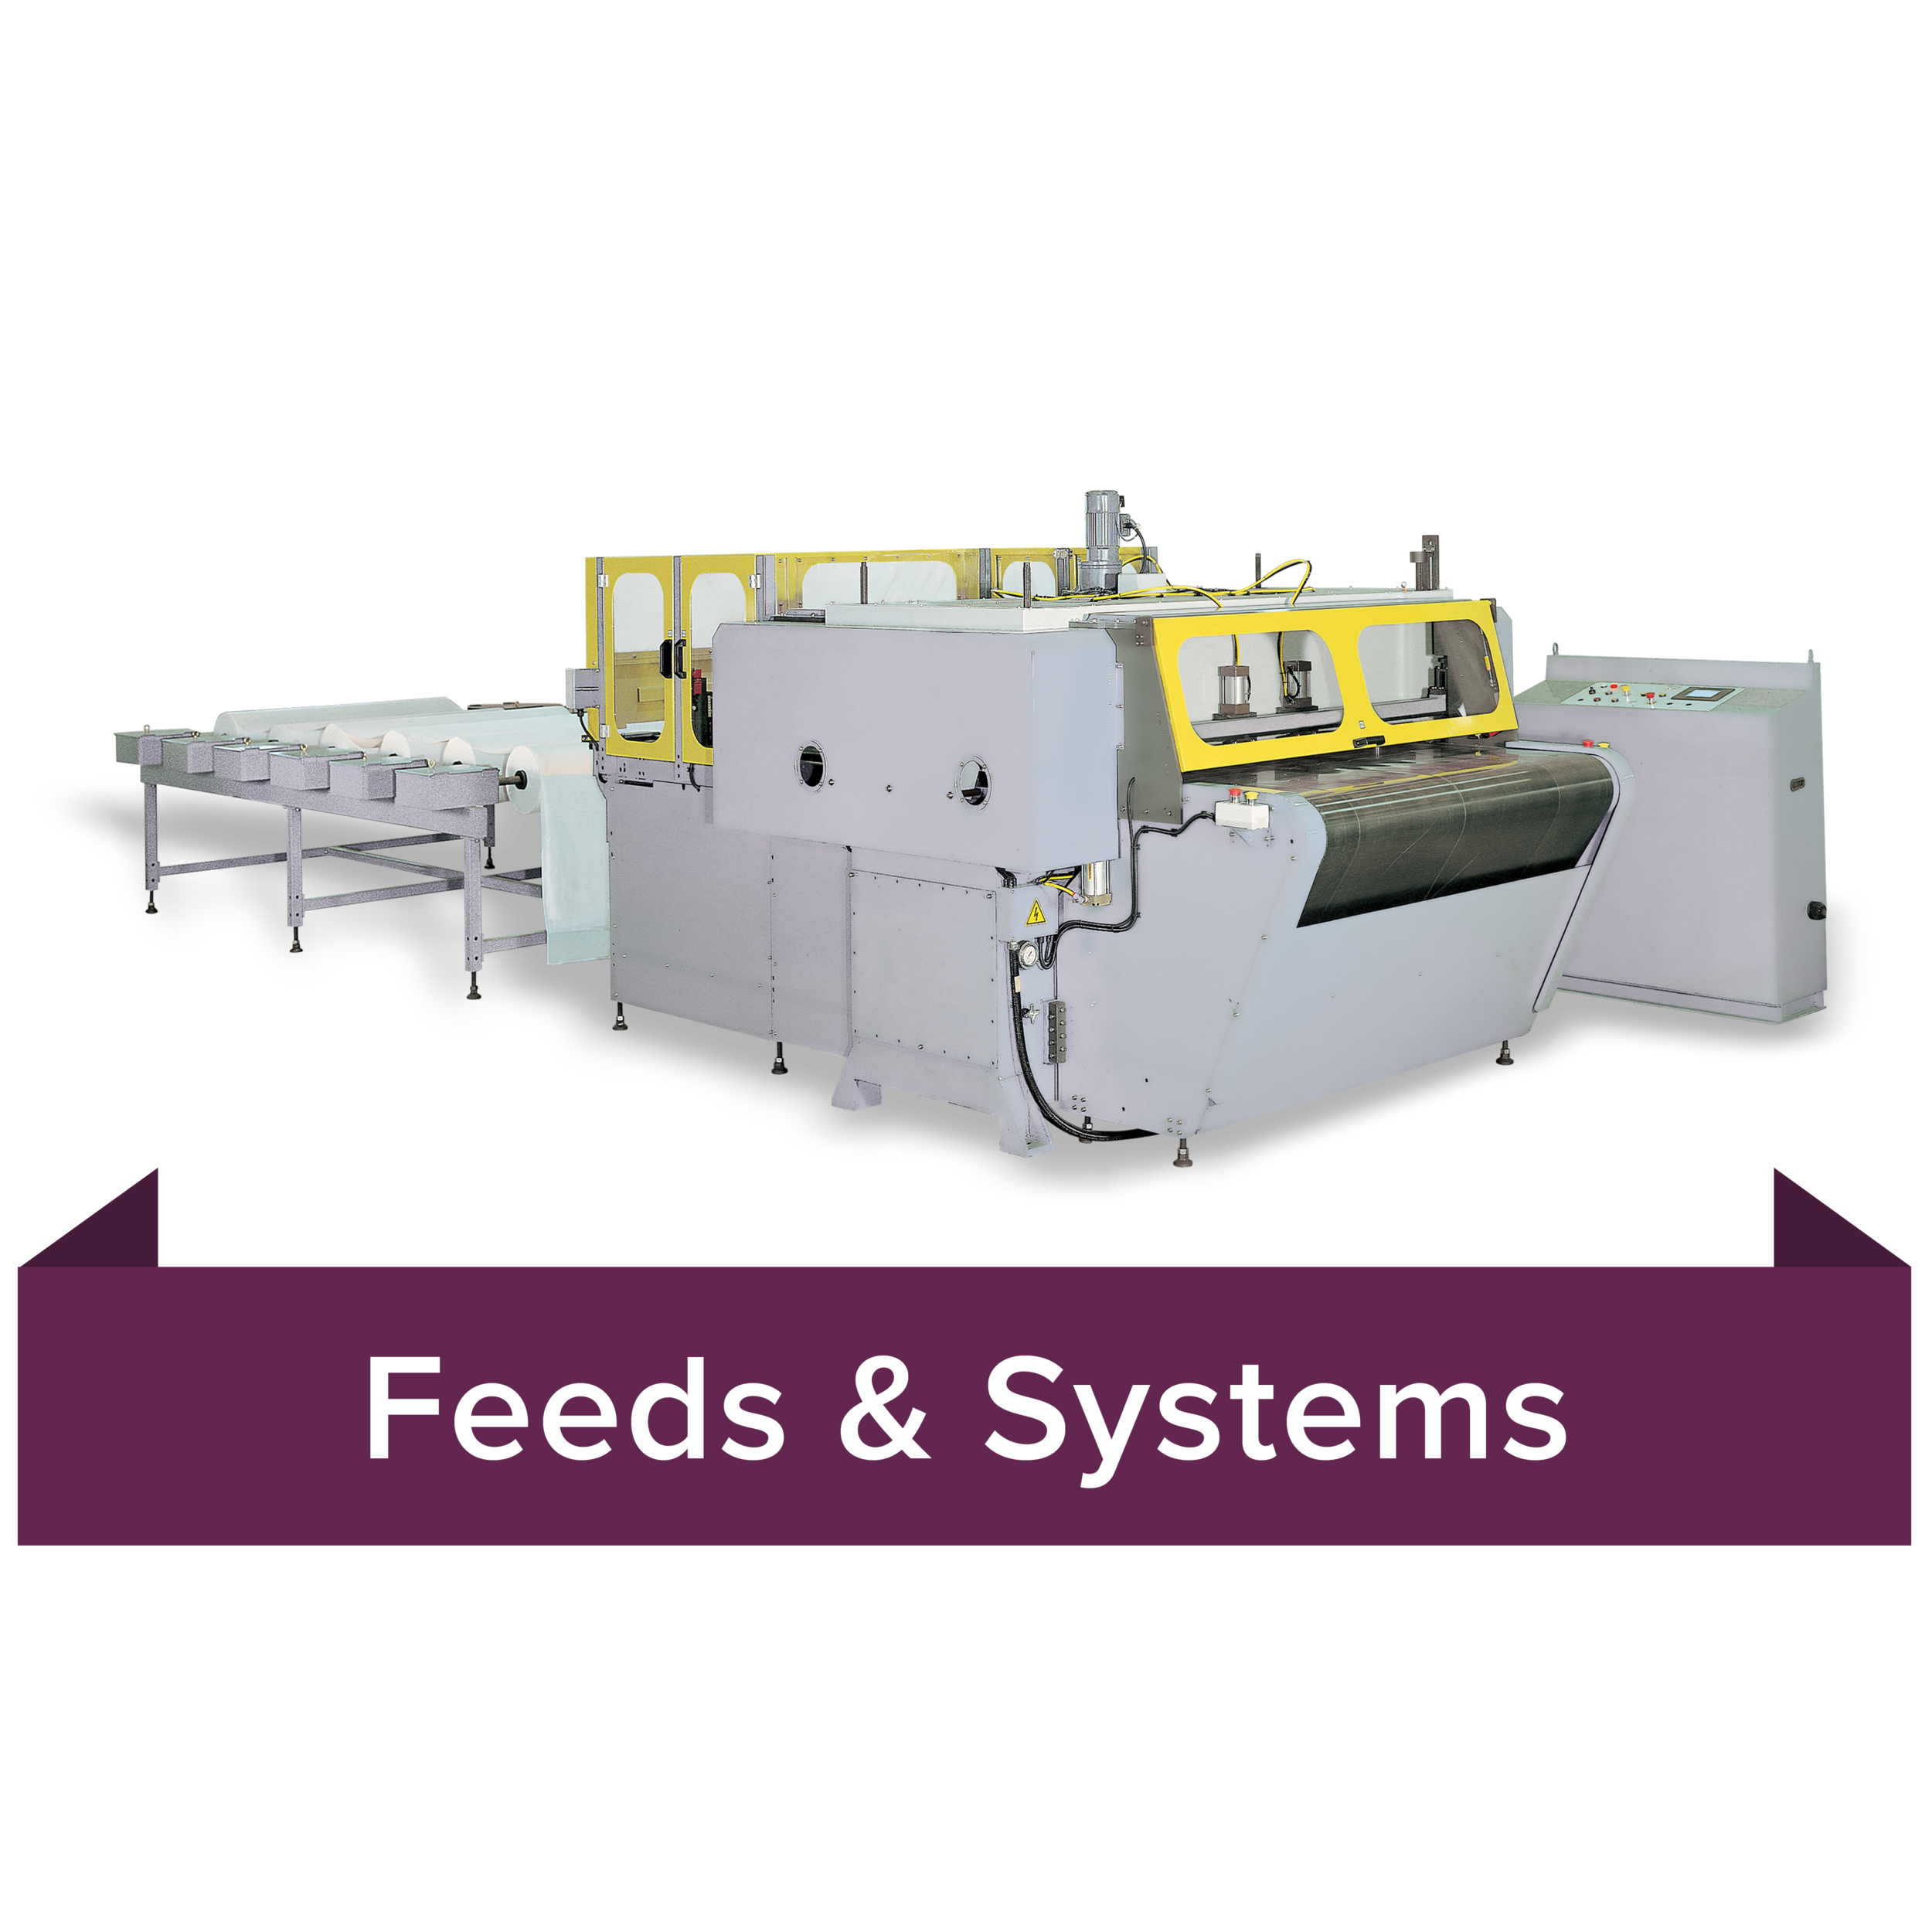 Feeds & Systems Brochure